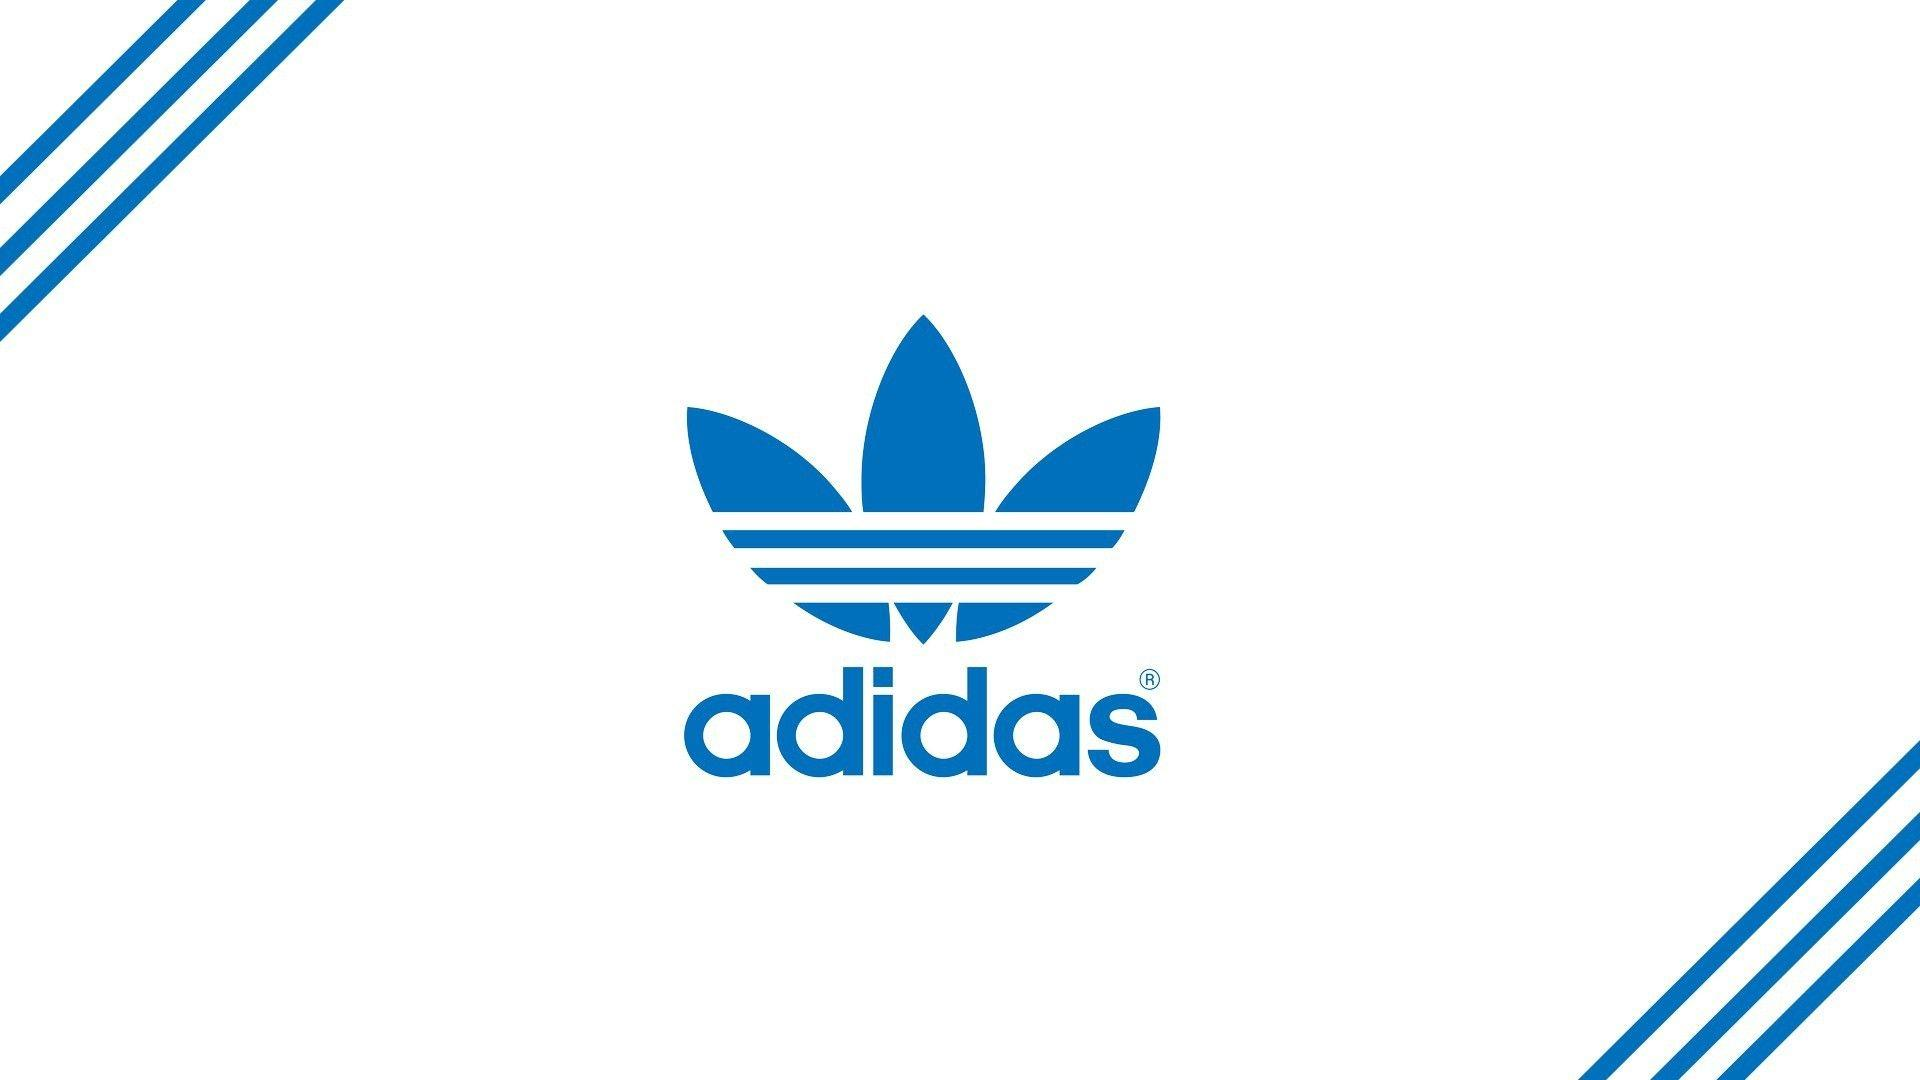 wallpaper adidas original pc